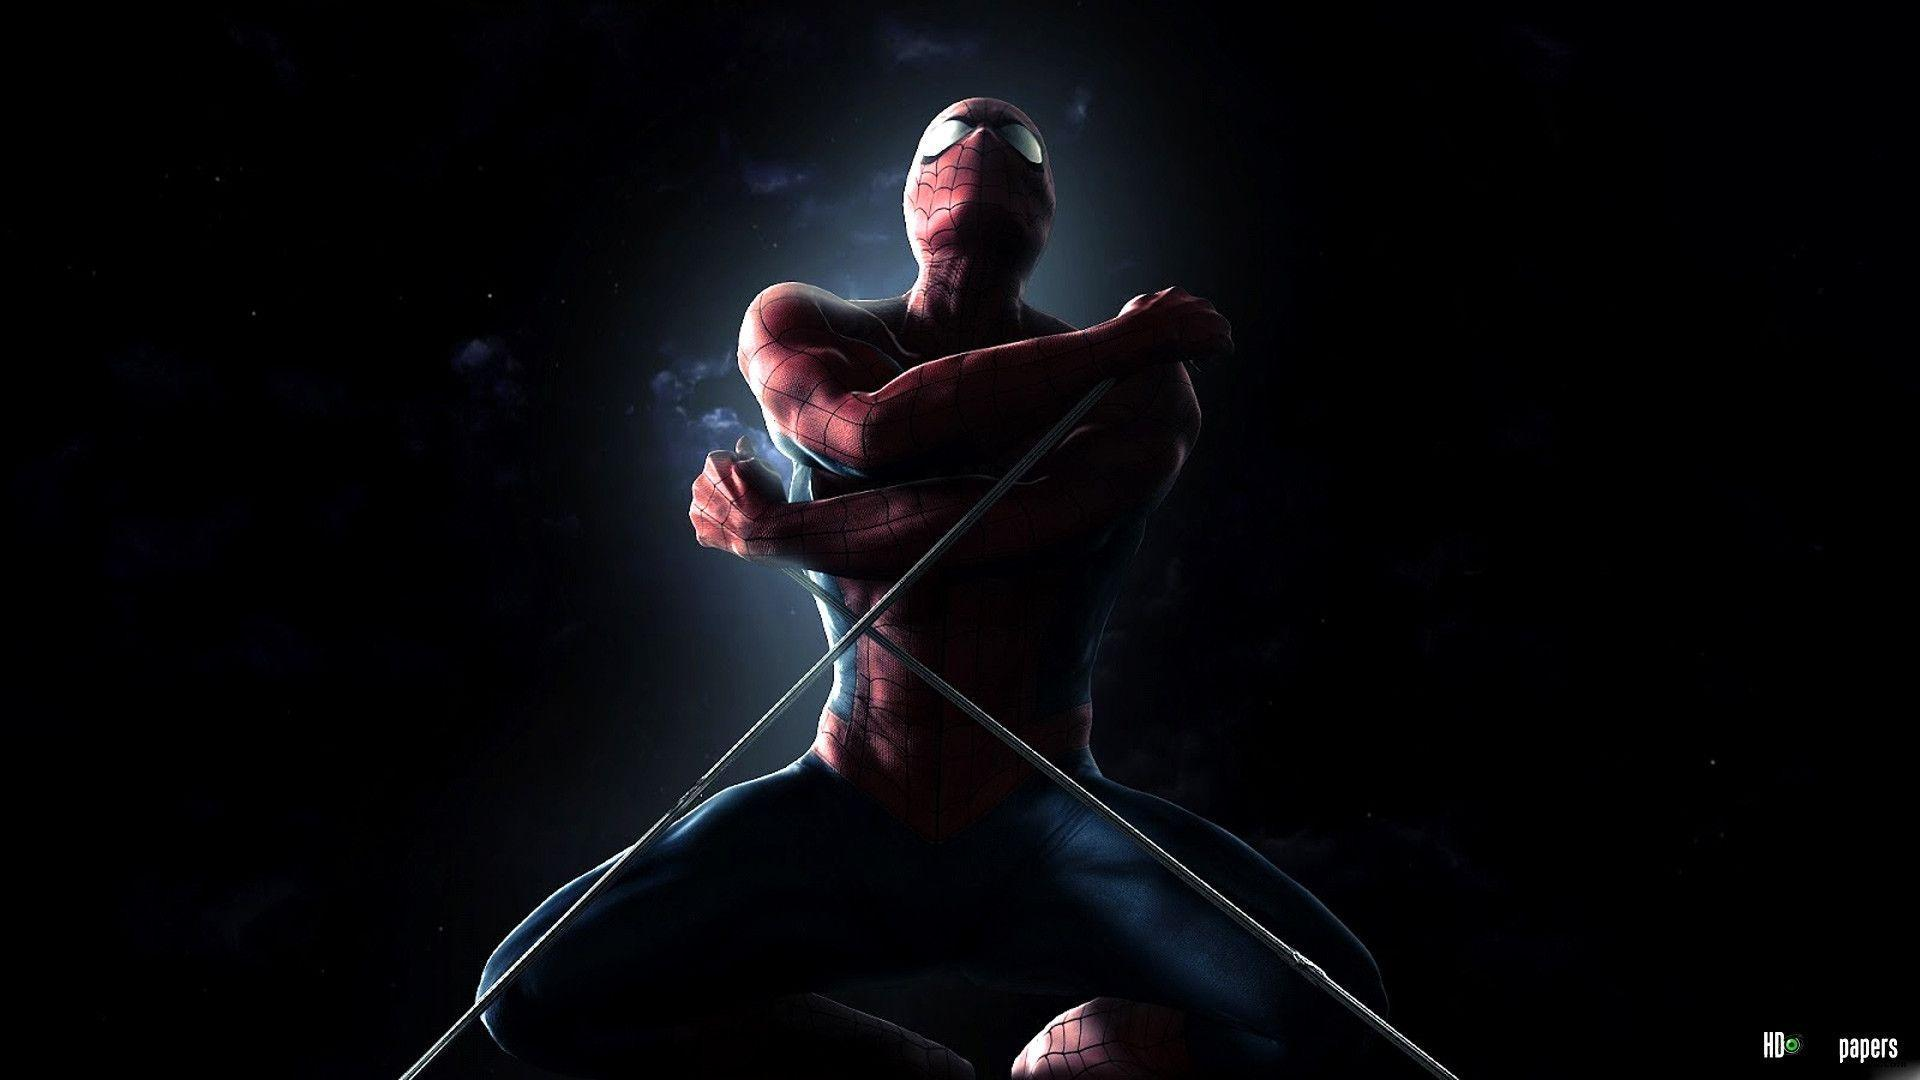 Hd wallpaper spiderman - The Amazing Spider Man 2 Hd Wallpapers